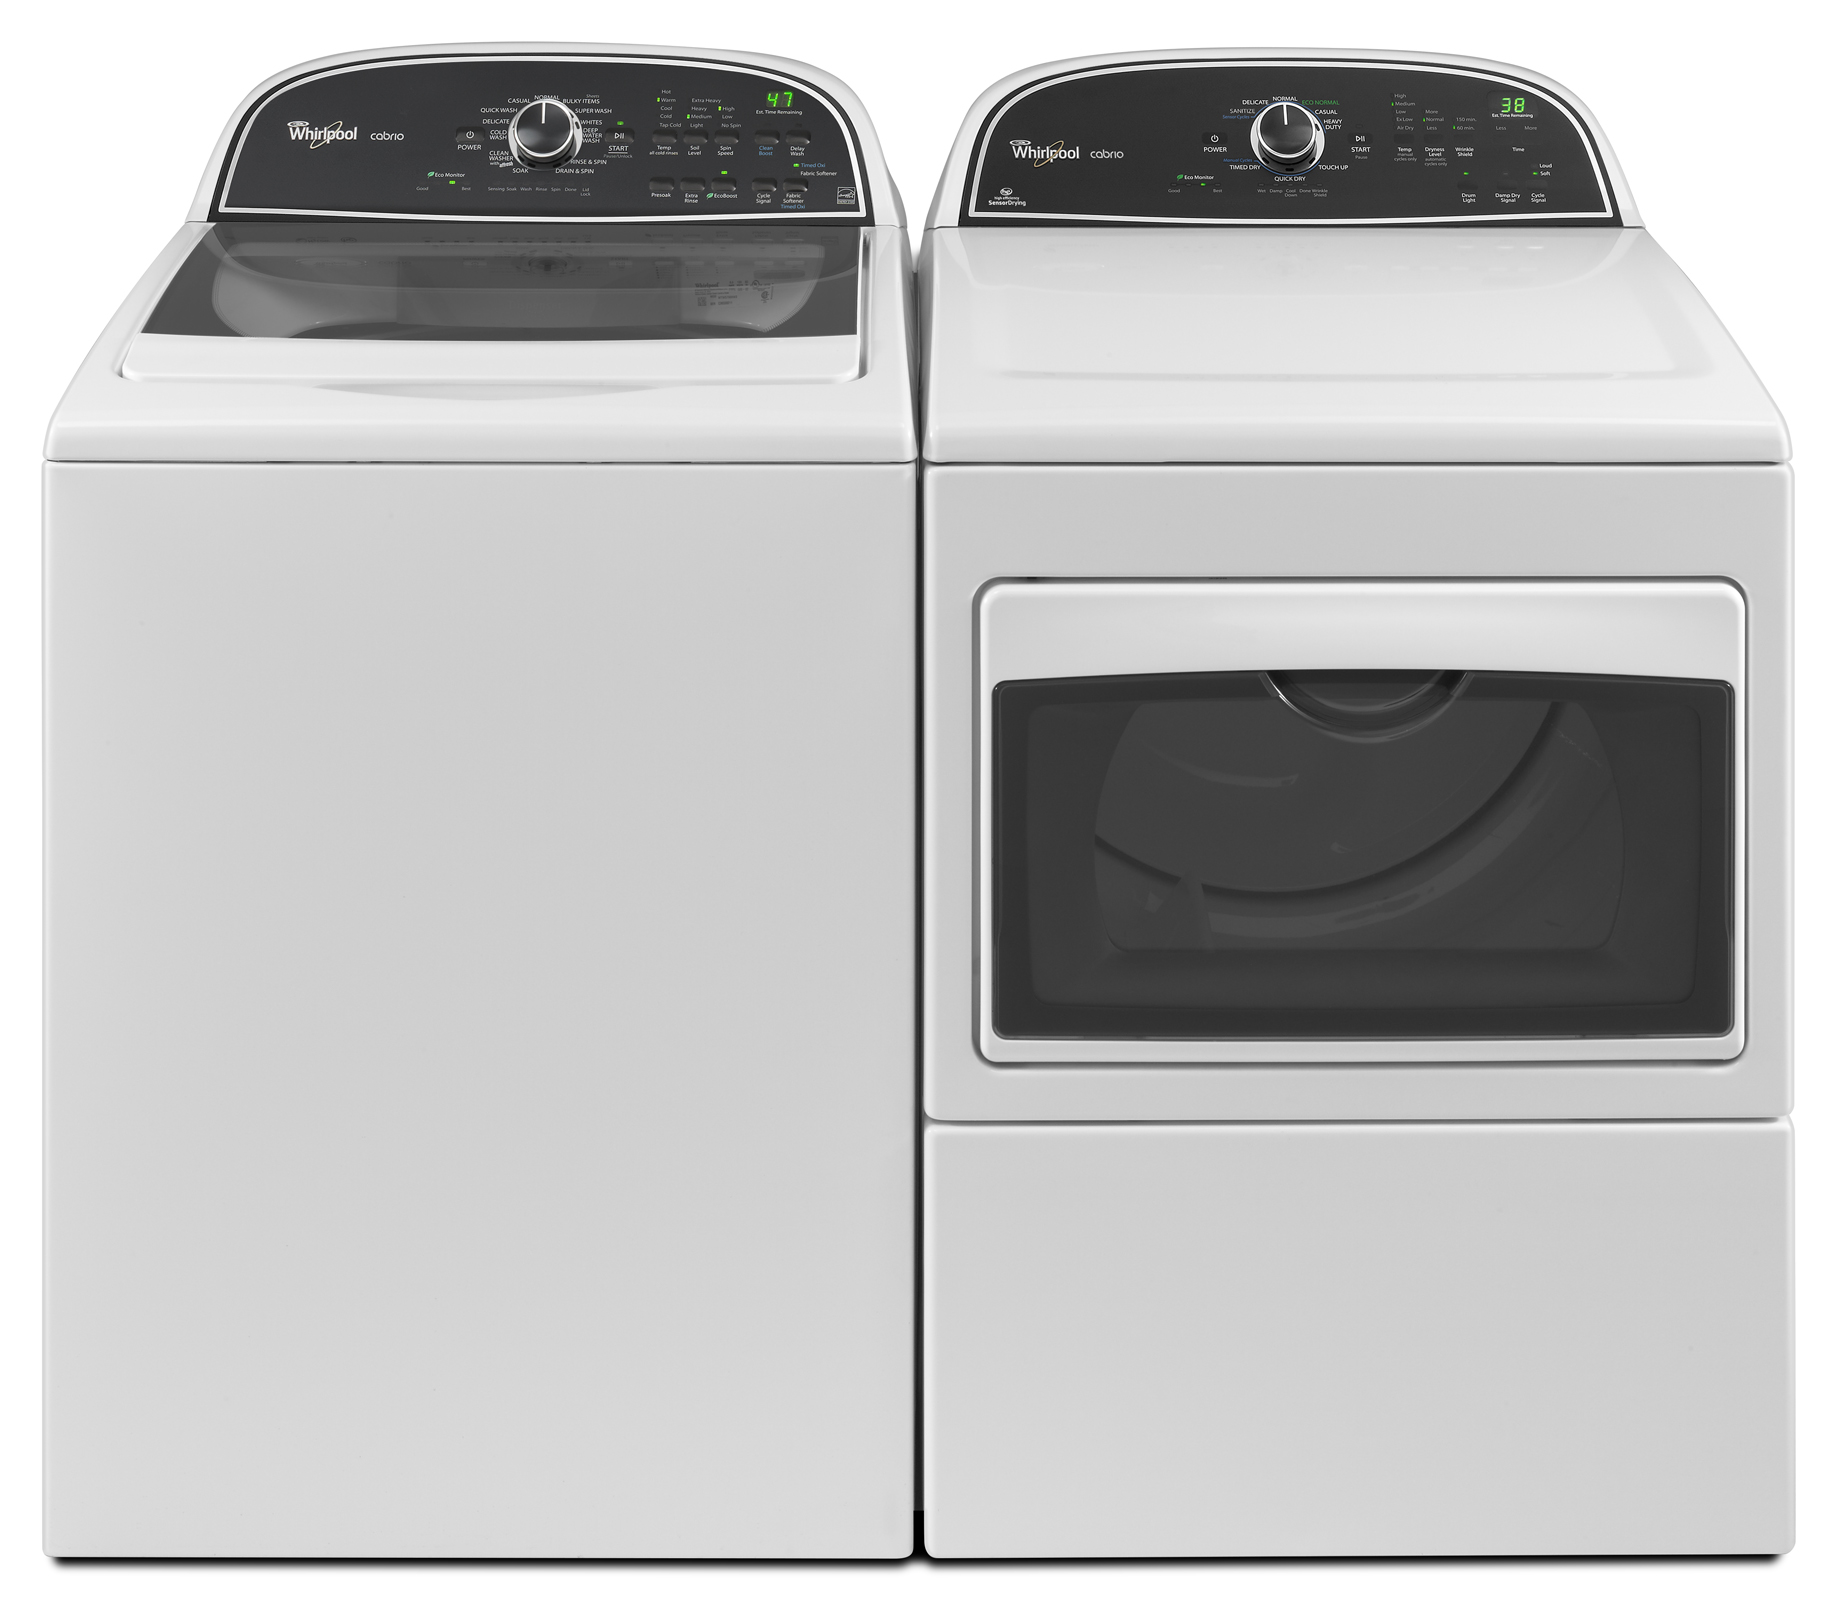 Whirlpool 7.4 cu. ft. Cabrio® Gas Dryer w/ Sanitize Cycle - White